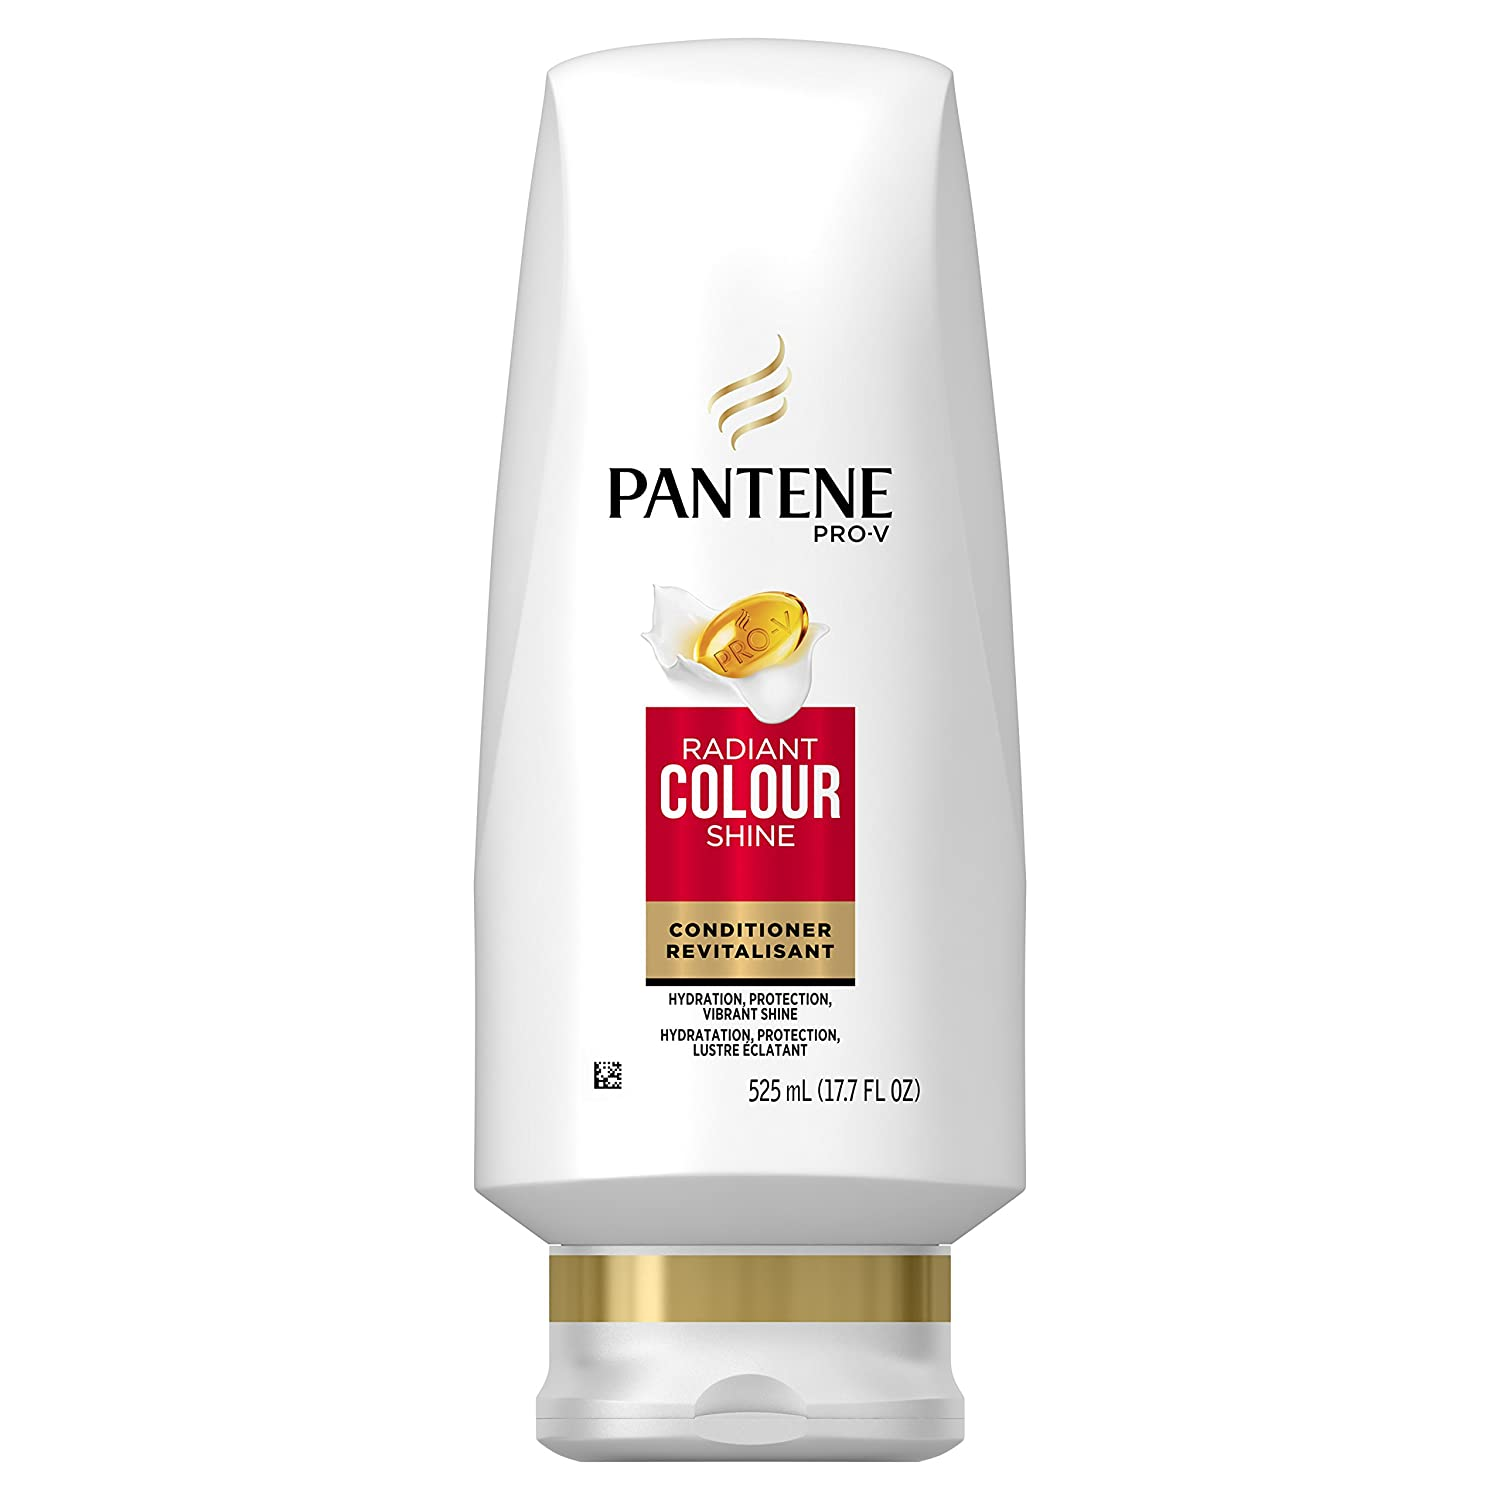 Pantene Pro-V Radiant Colour Shine Conditioner, 525 mL, packaging may vary Procter and Gamble